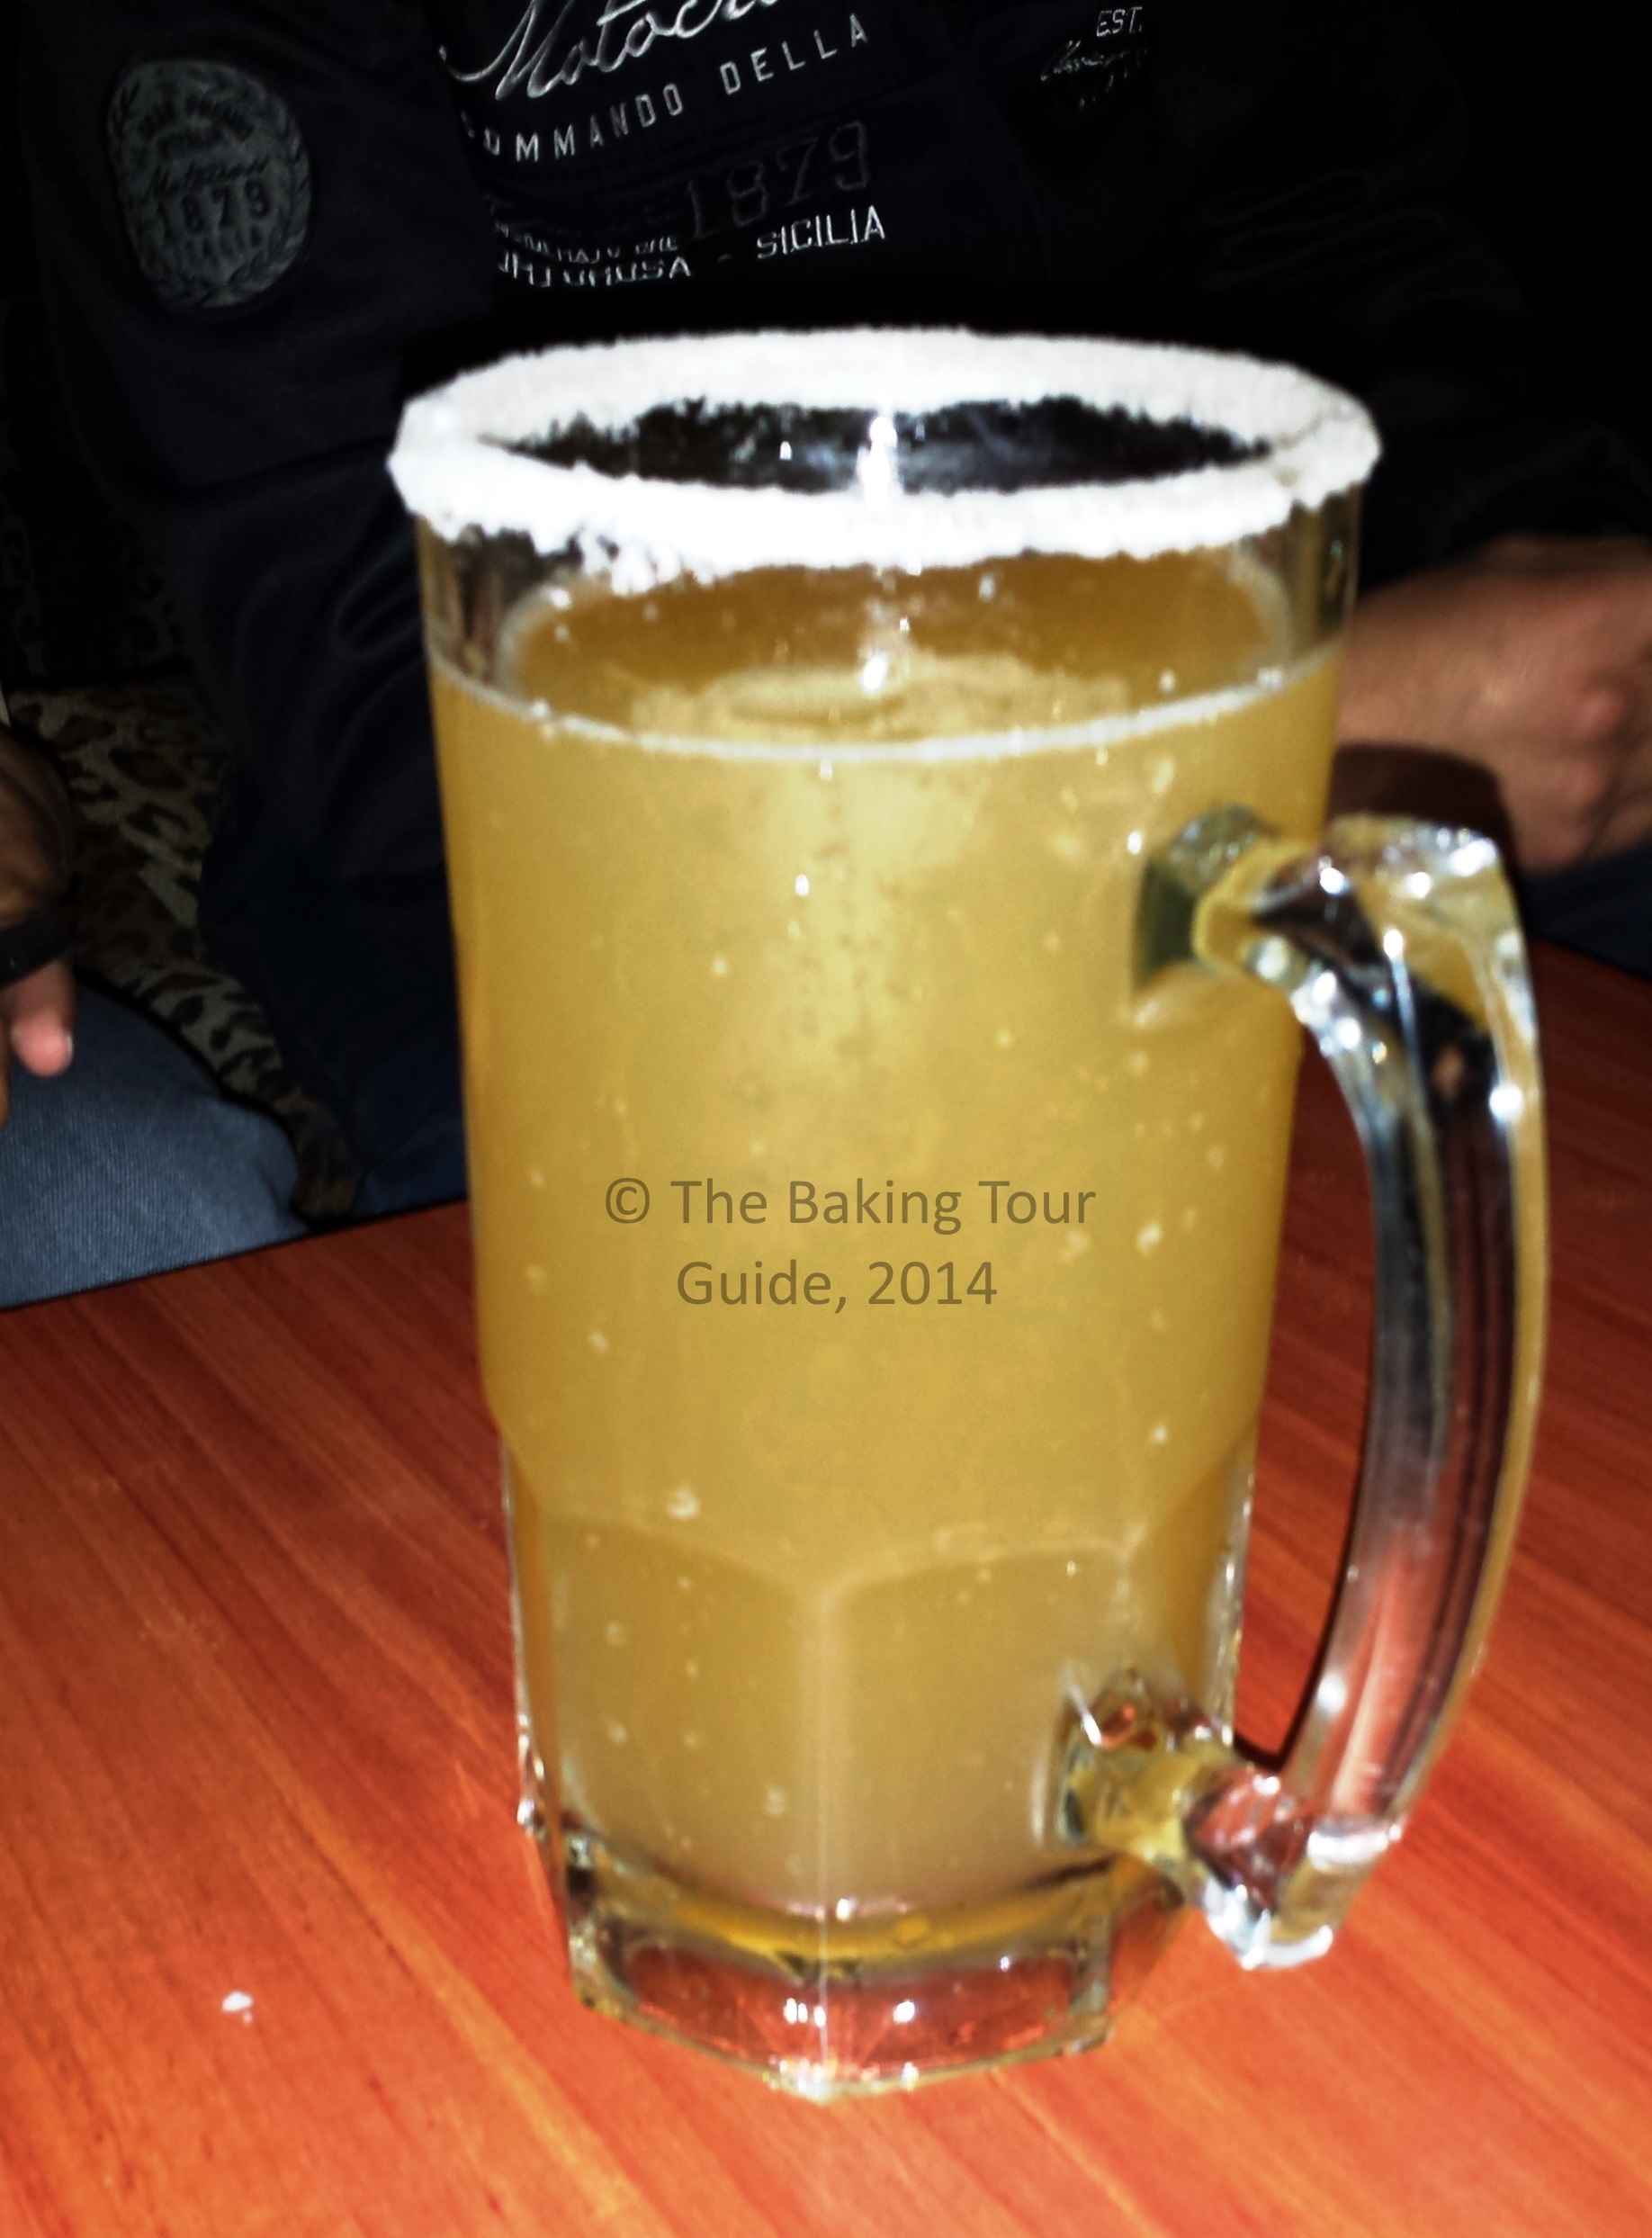 beer classification essay Glassware for beer, tips and types of glassware glassware tips many are available on-line, at stores like crate & barrel or, for those of you in the beer industry, from restaurant glassware wholesalers.